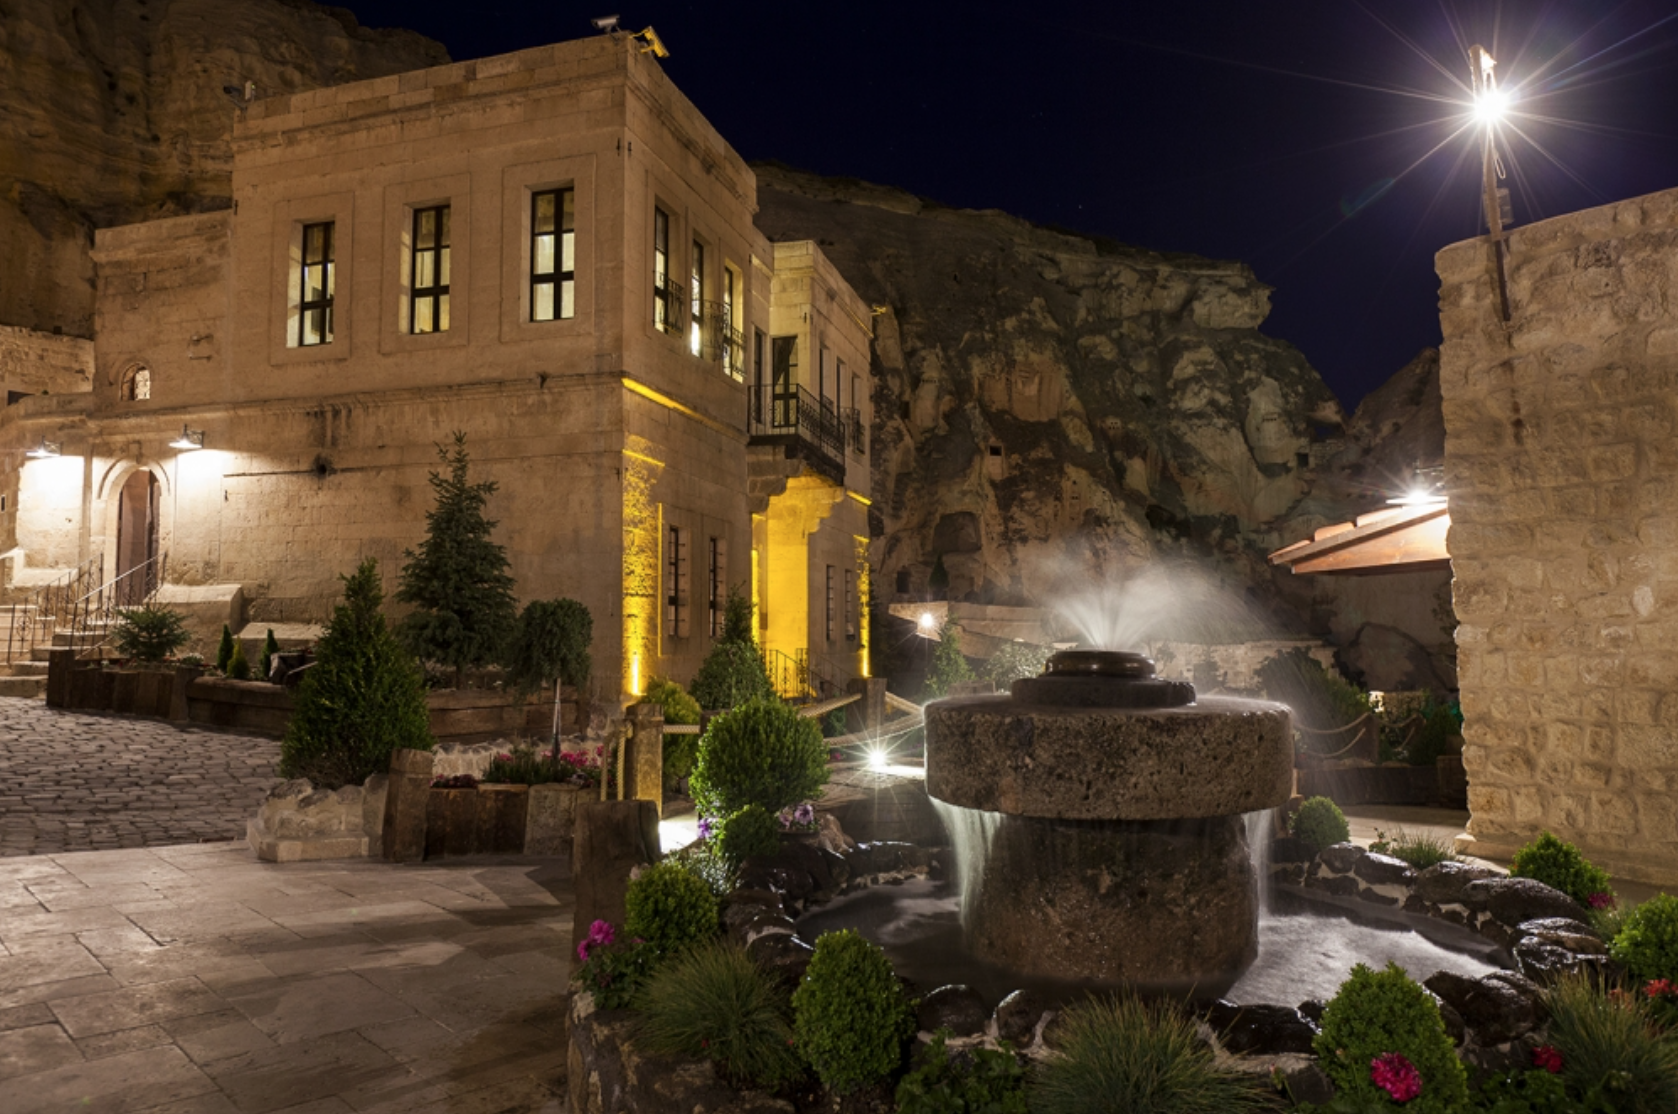 The Yunak Evleri hotel includes the caves and an adjacent 19th century Greek mansion.